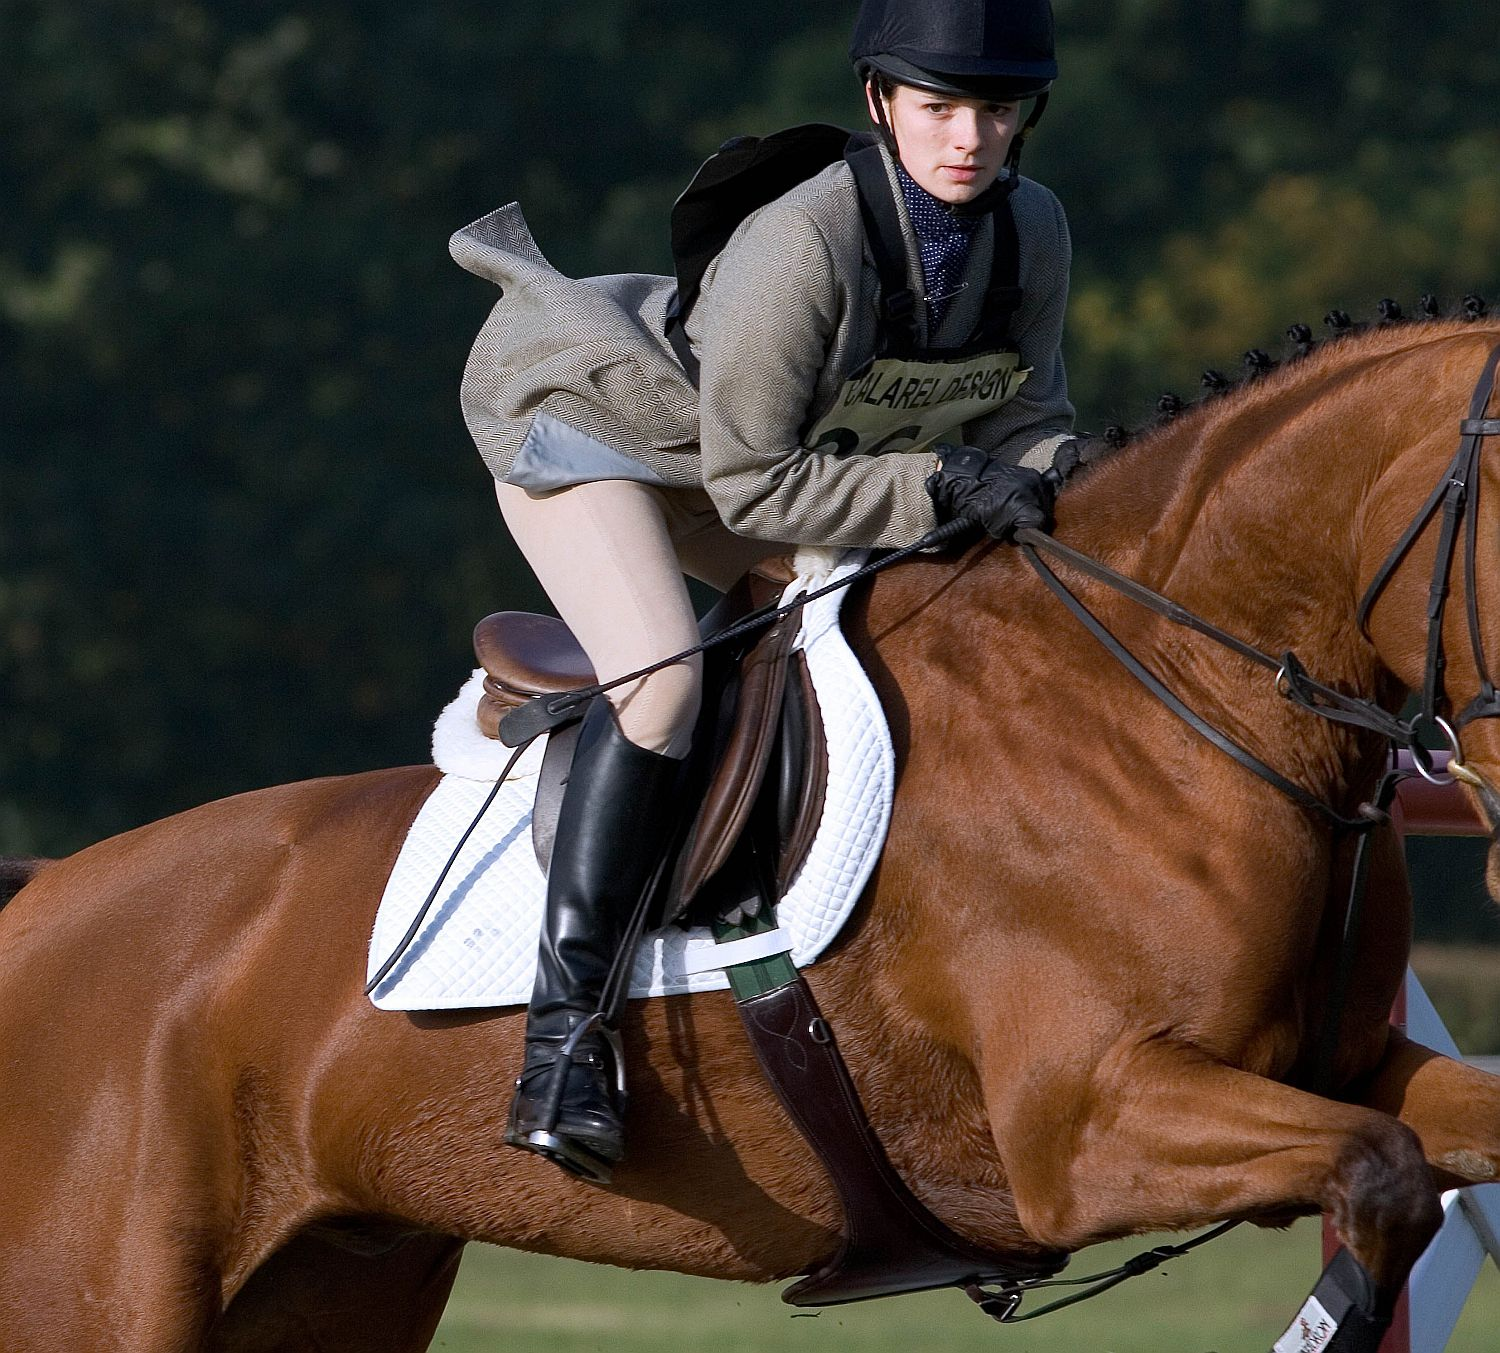 choosing safe horseback riding boots